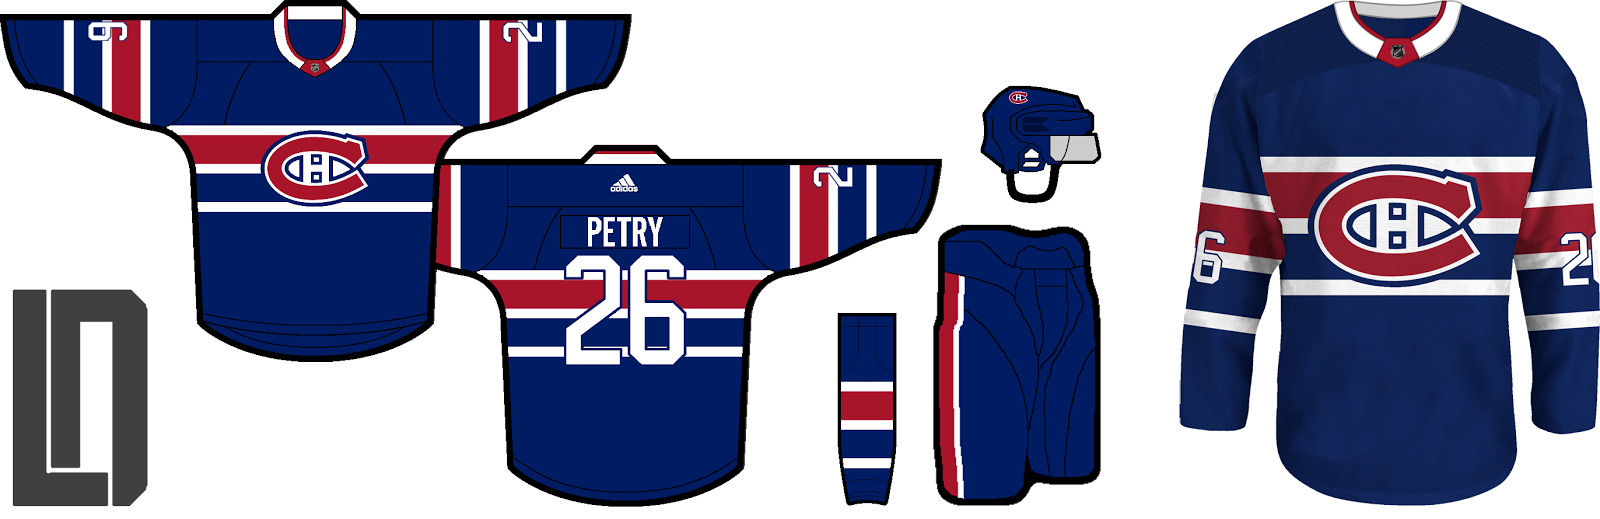 Montreal+Canadiens+Concept.png